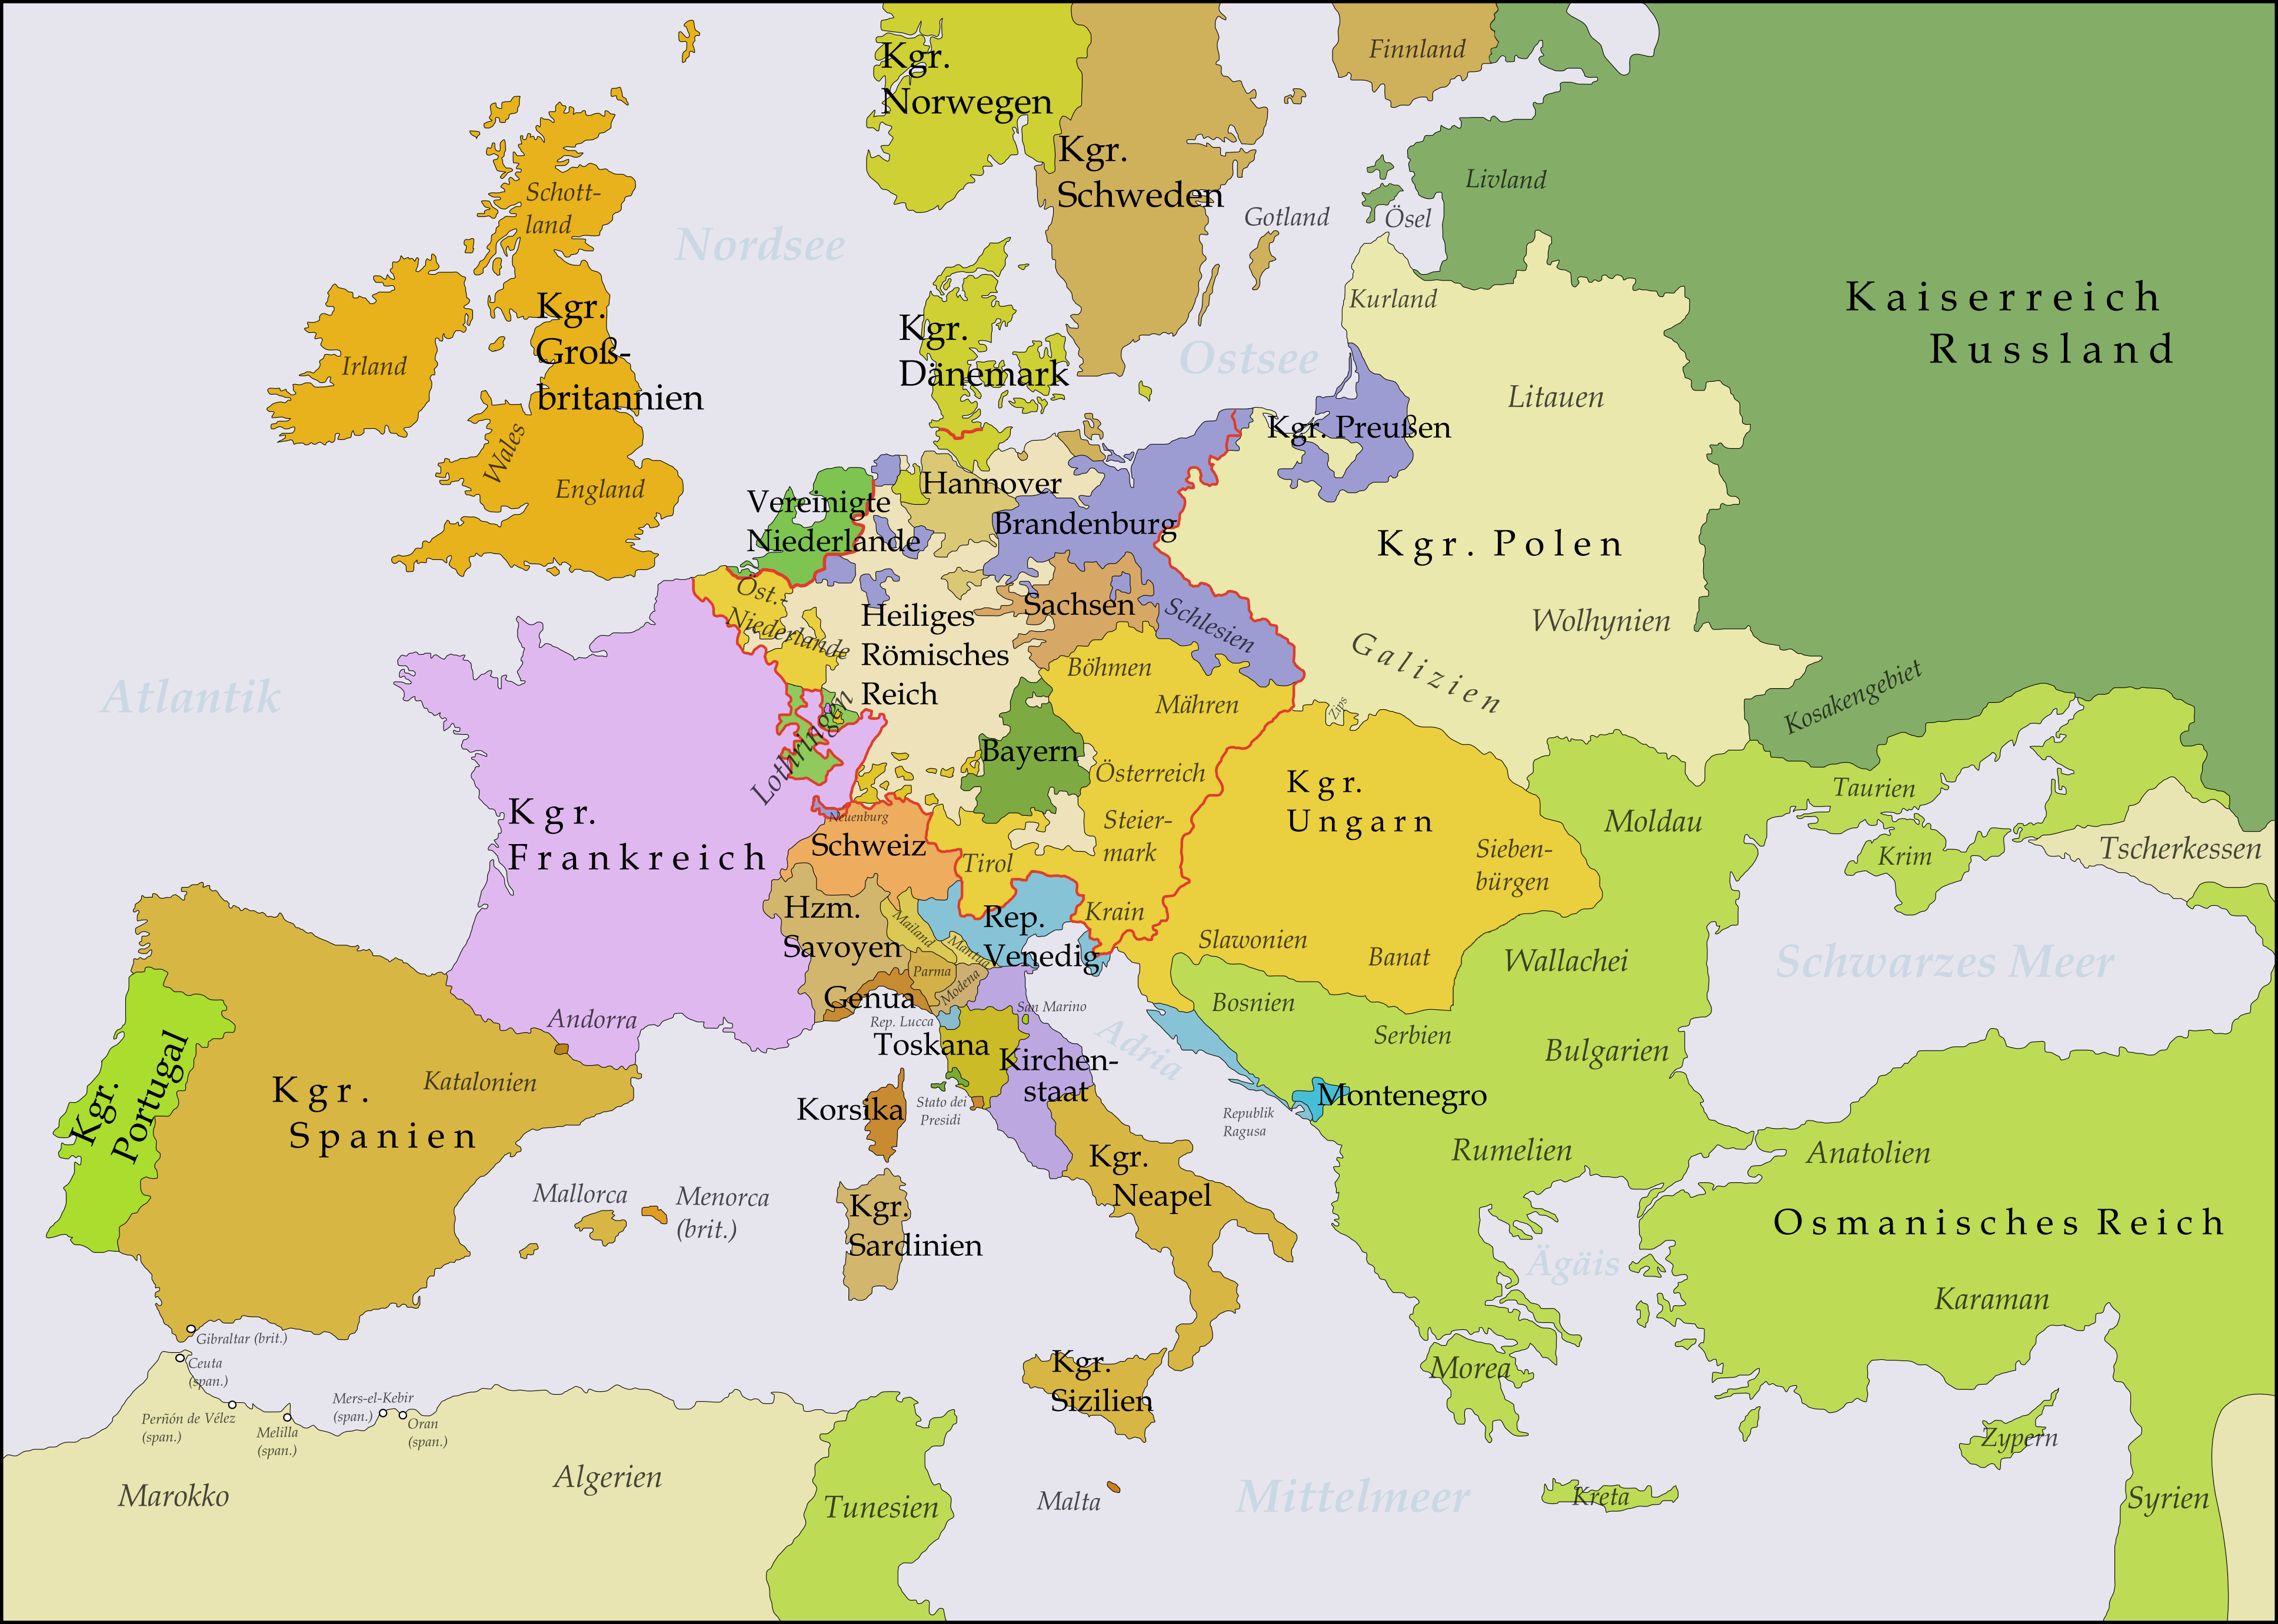 Europe_1748-1766.png